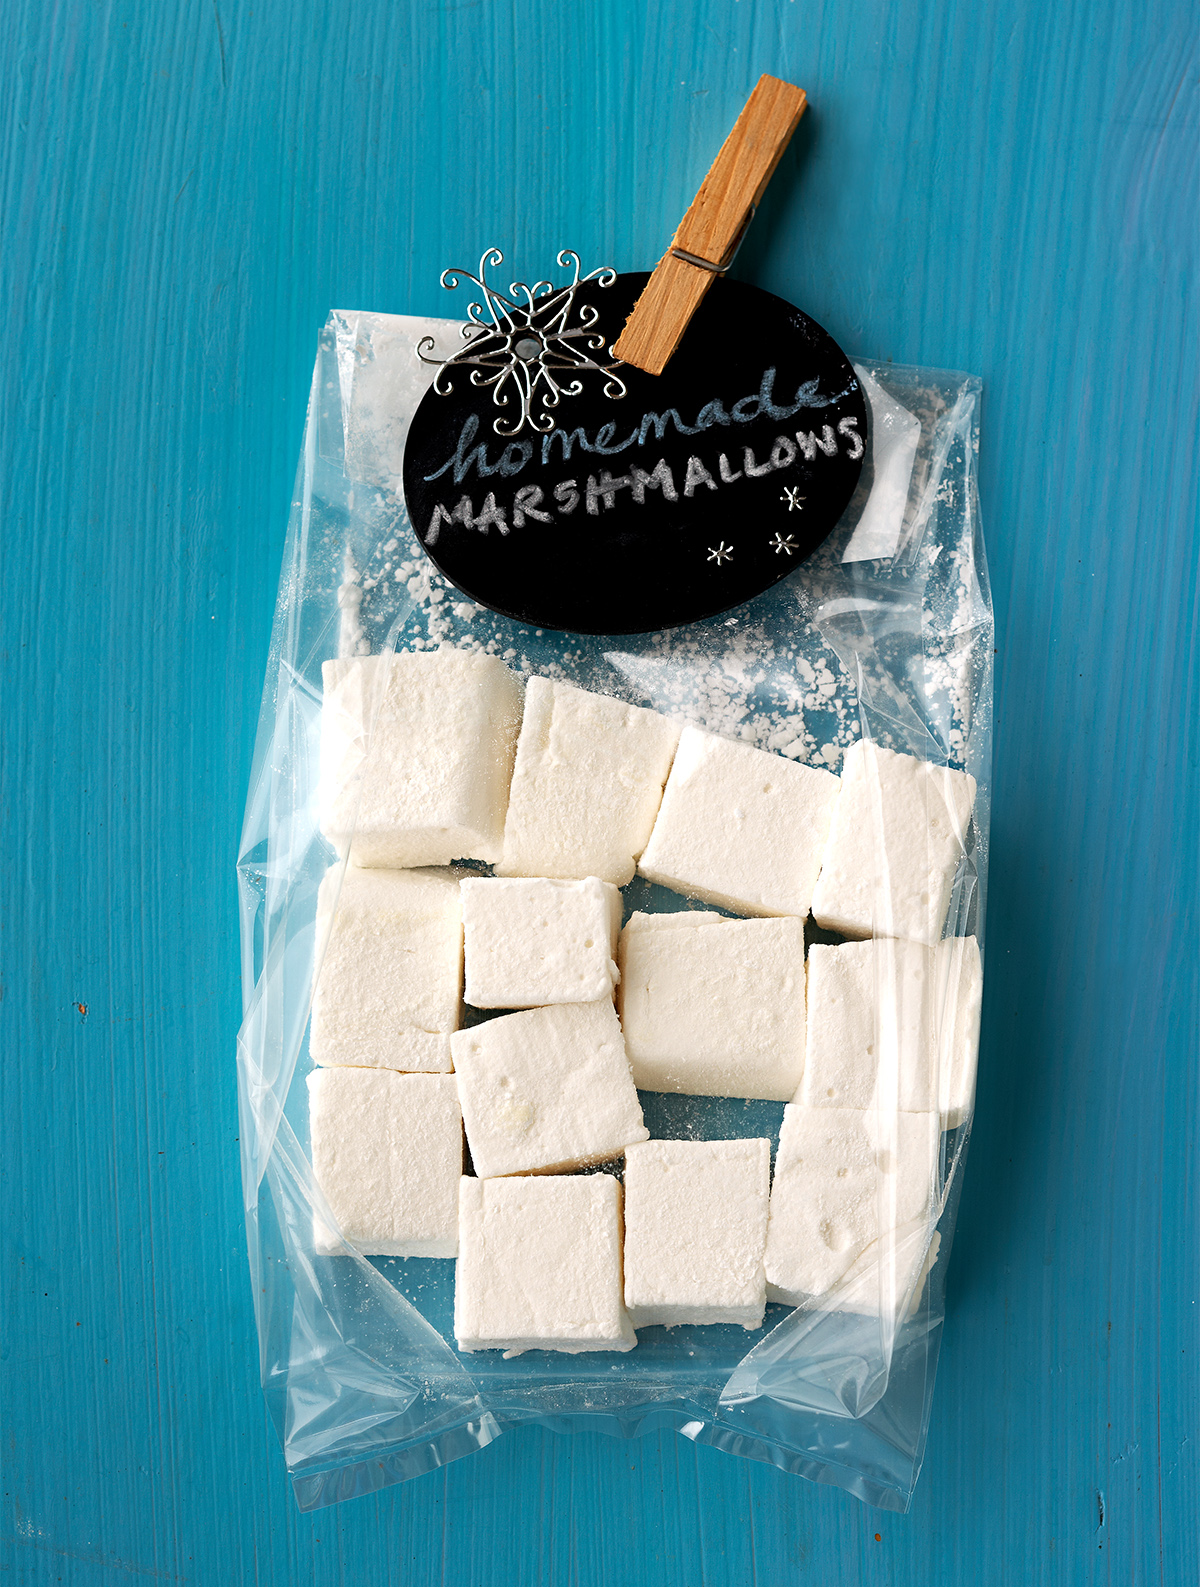 clear package of homemade marshmallows and decorative black tag